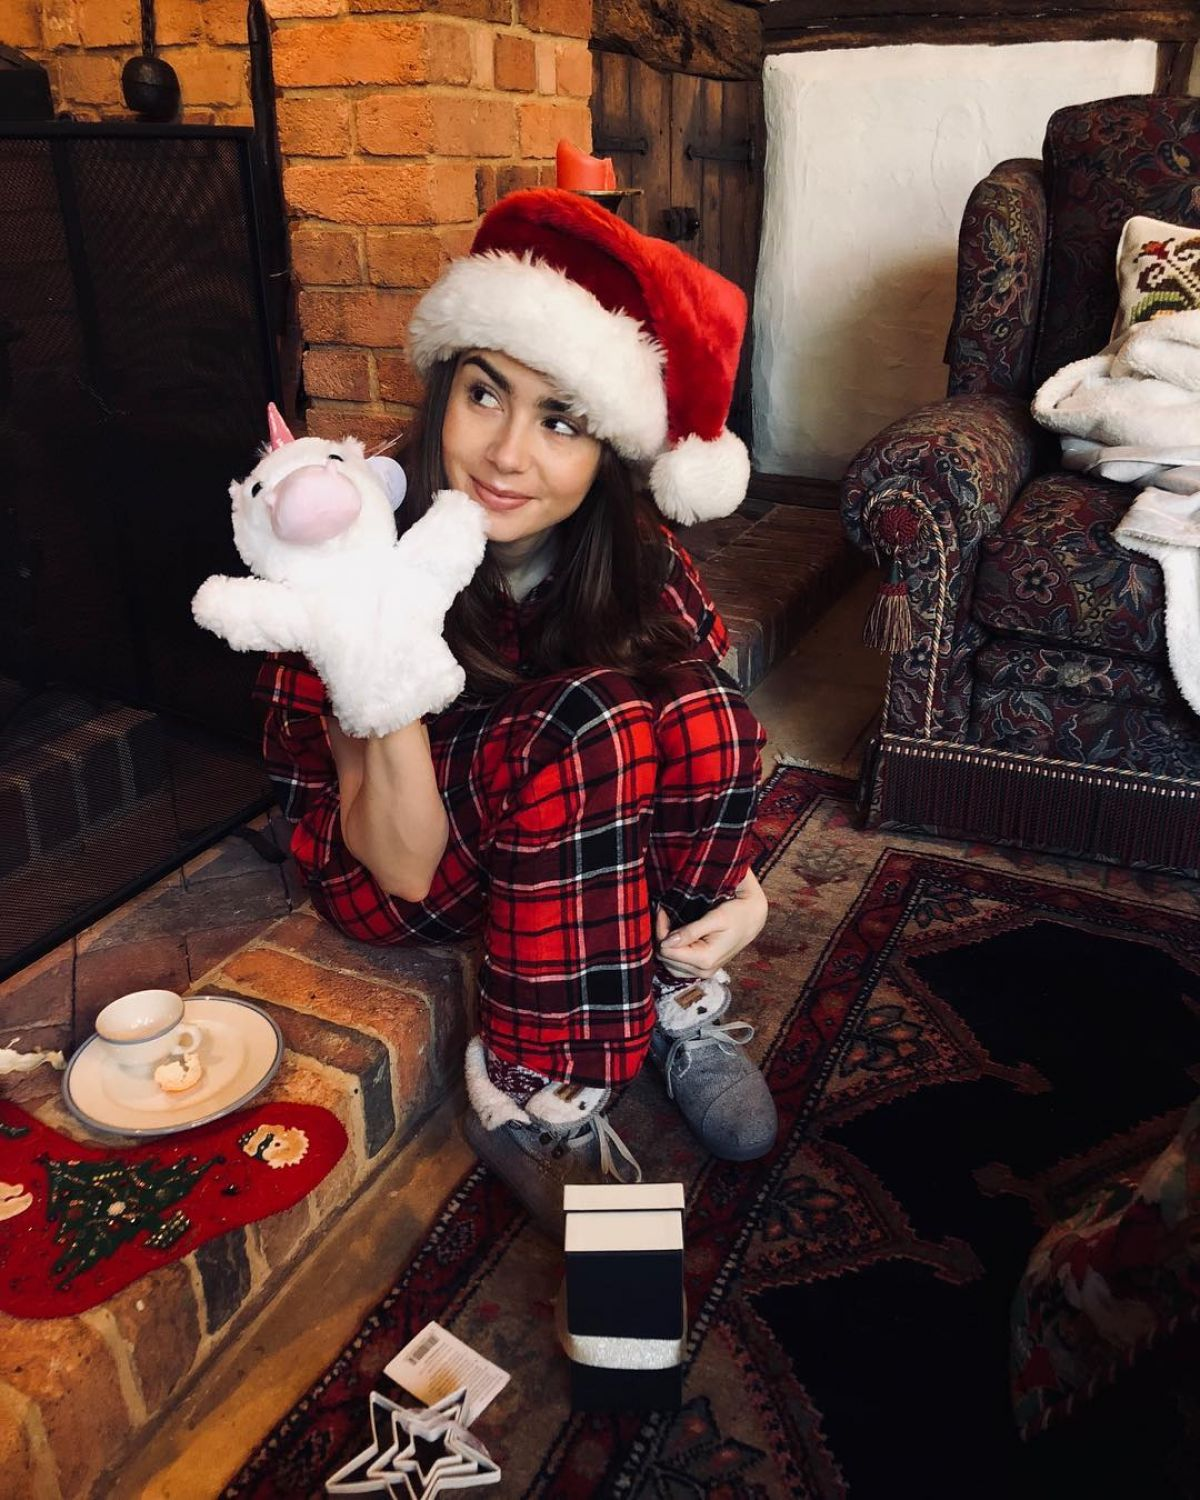 lily-collins-christmas-instagram-pictures-1.jpg